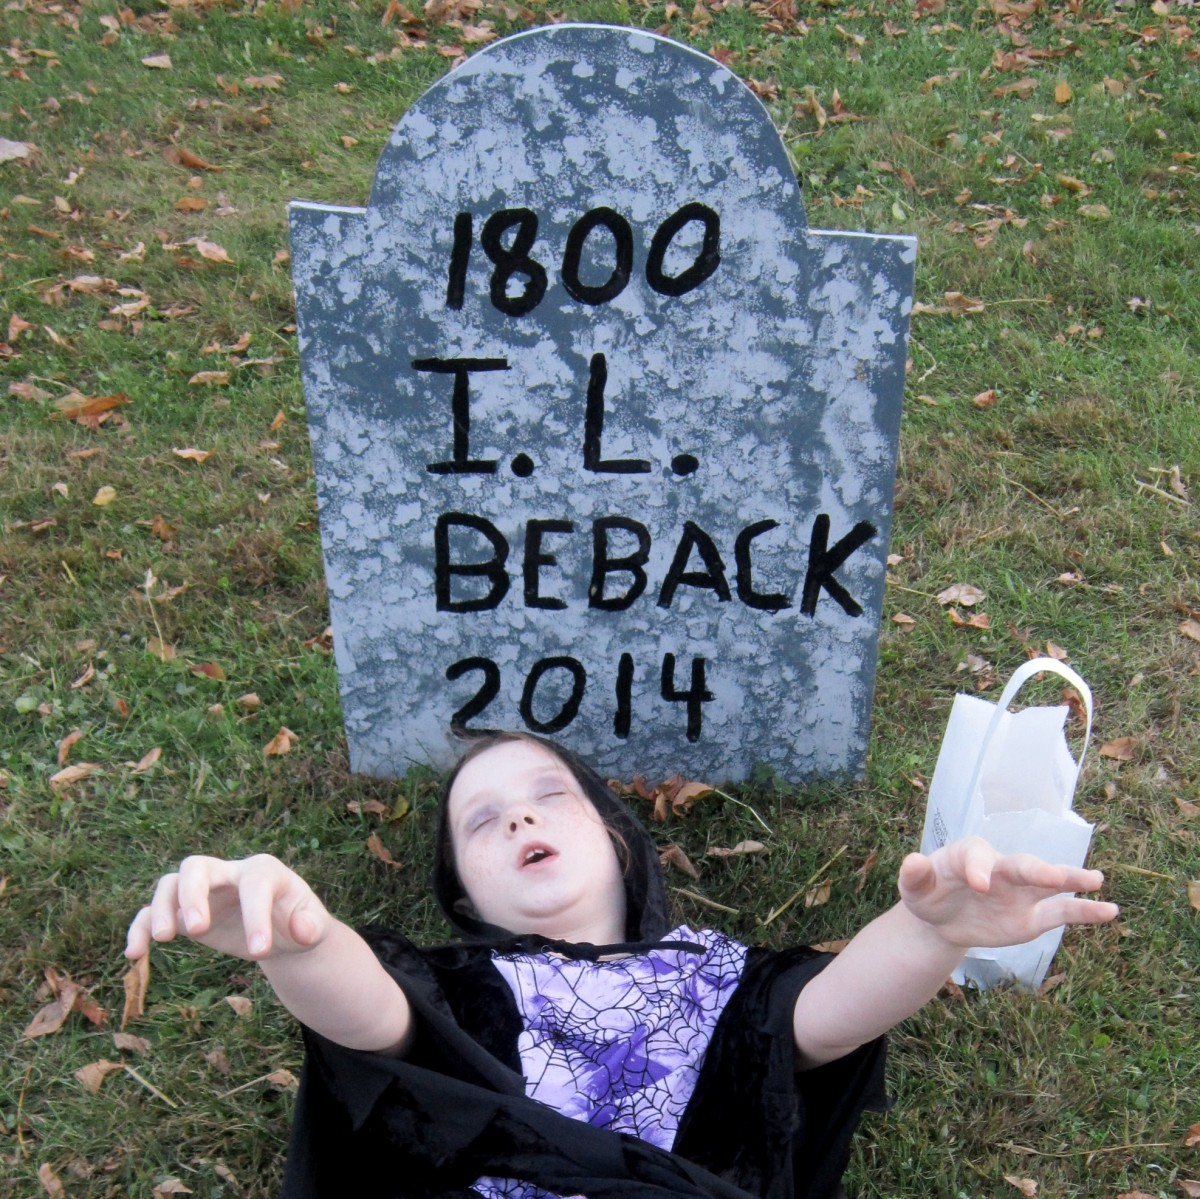 """I.L. Beback"" - Crossroads Village has its own little makeshift cemetery for Halloween. Read the creative 'names' with your kids, seeing who can get the joke first!"